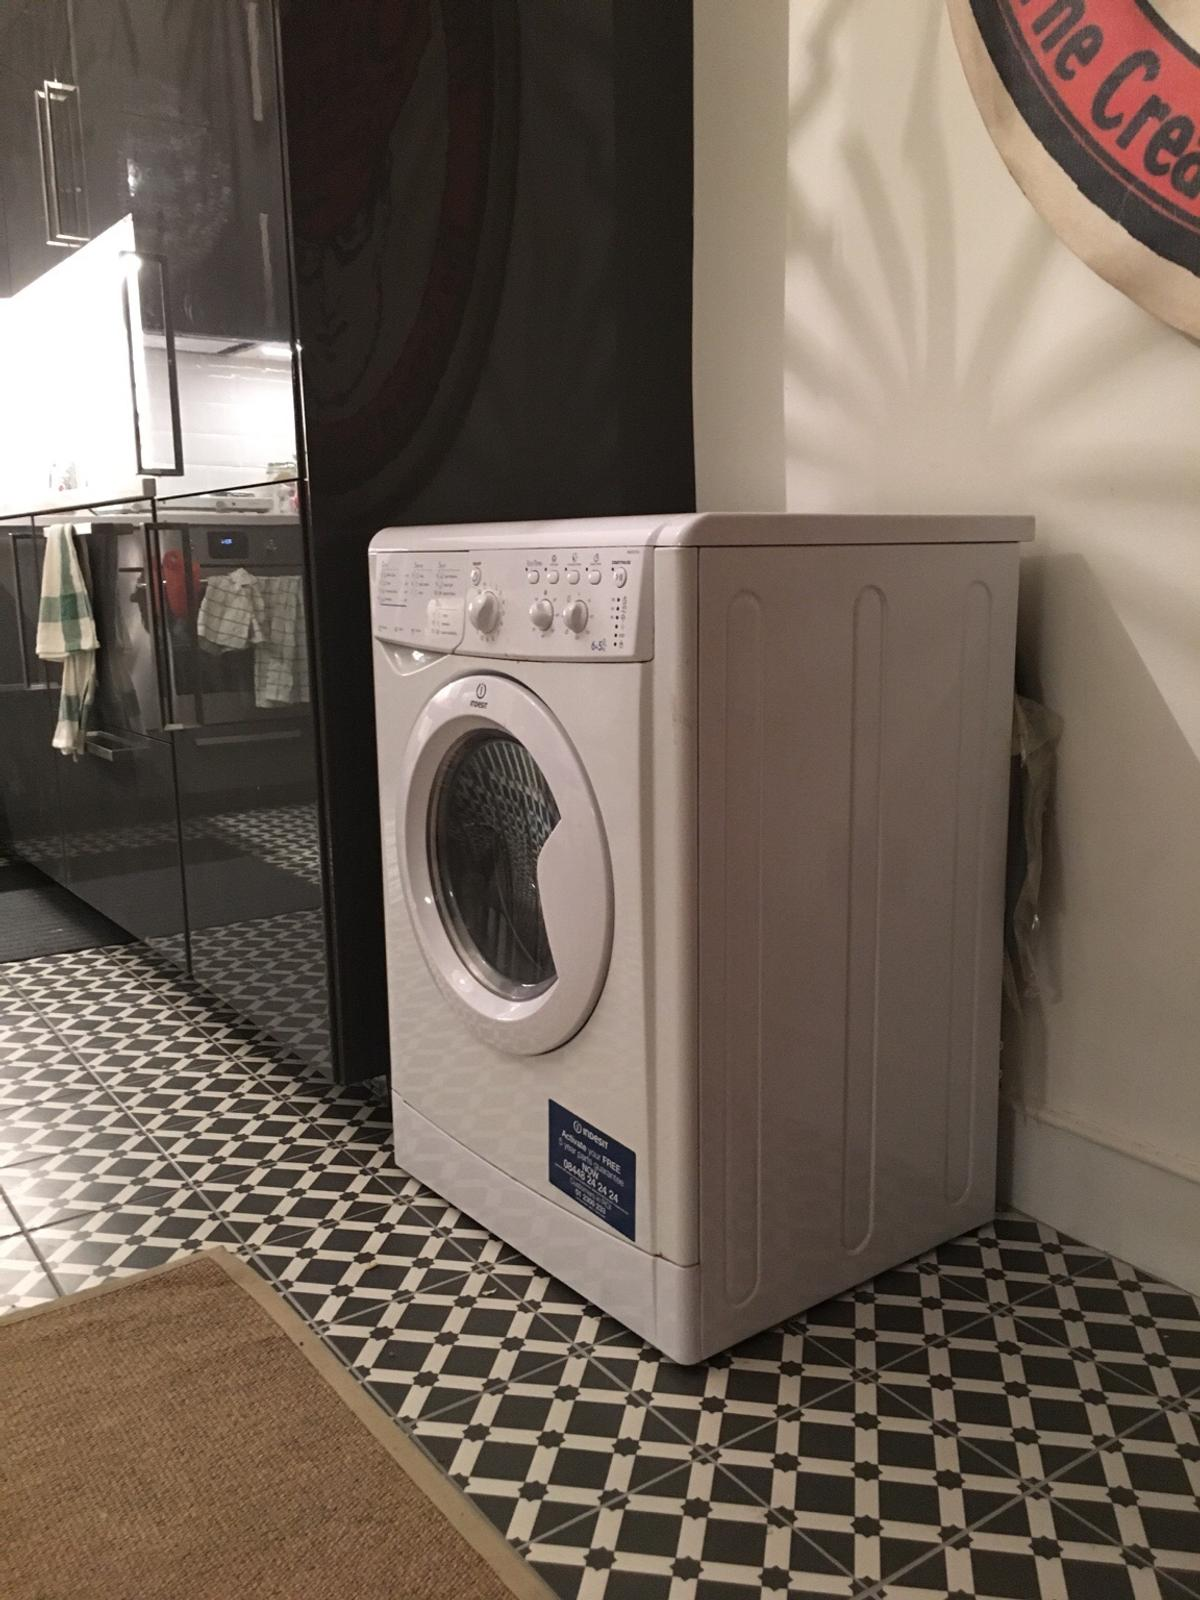 NEW indesity laundry machine